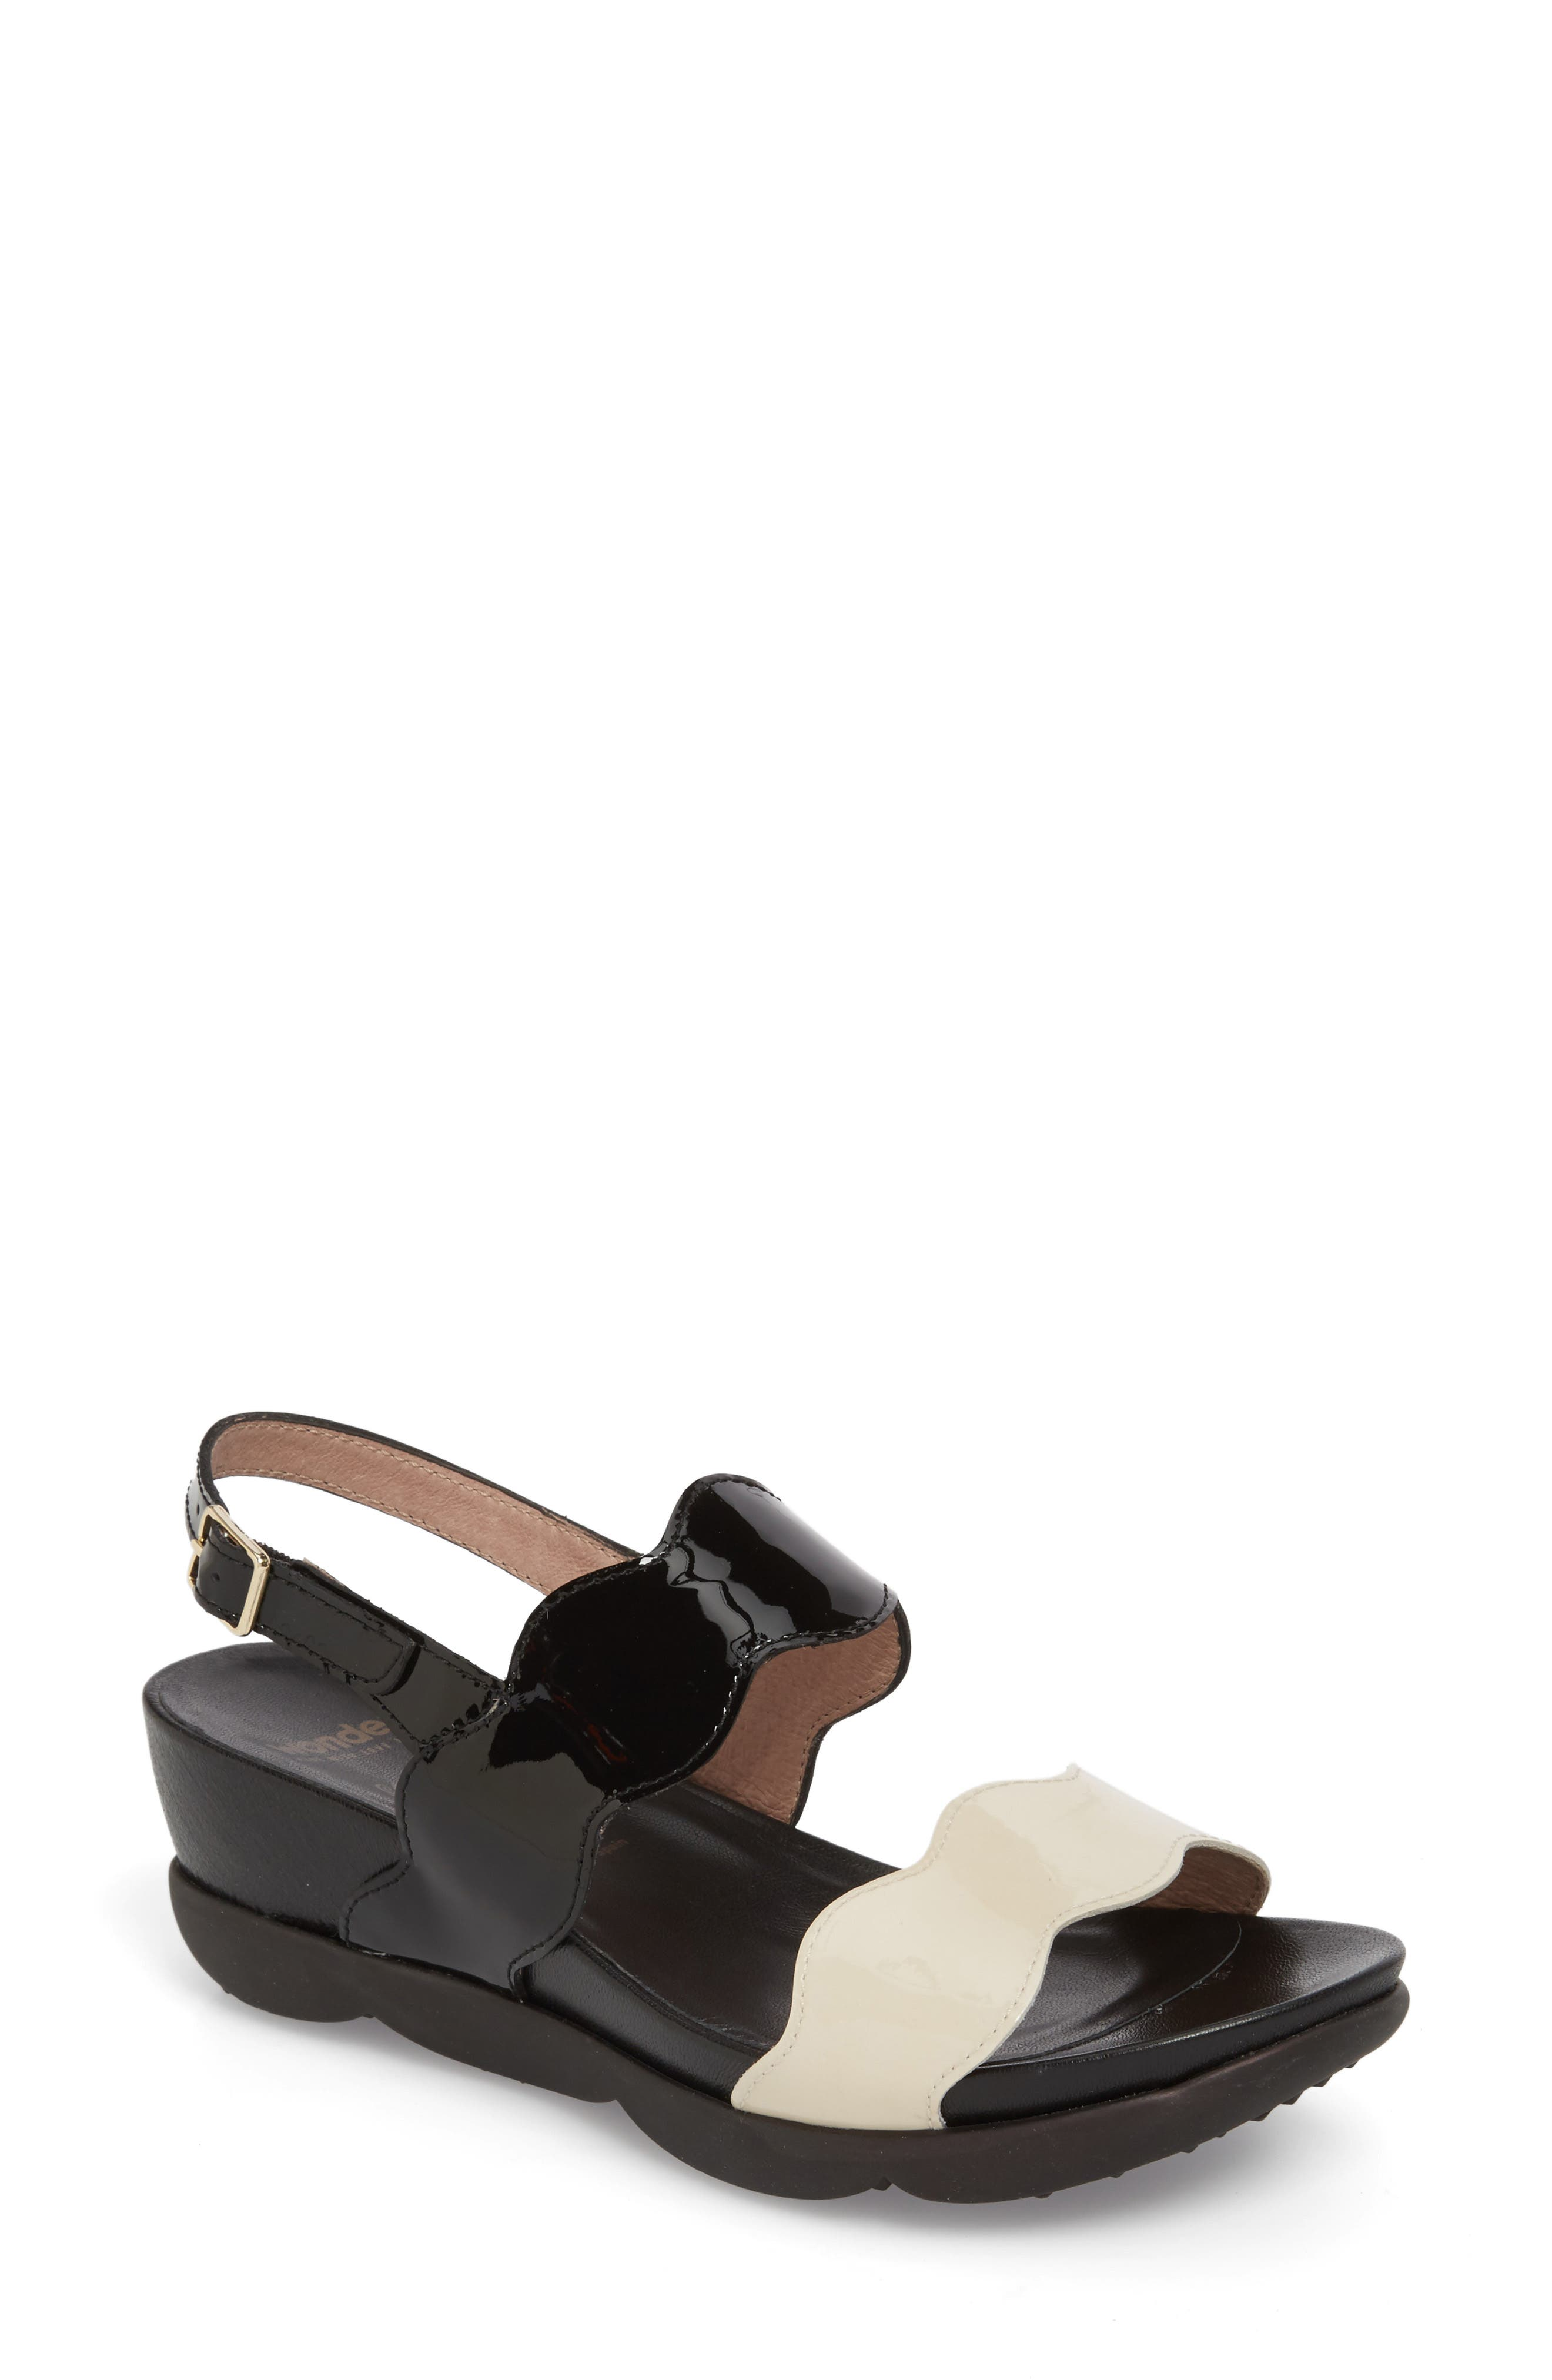 Wedge Sandal,                             Main thumbnail 1, color,                             Black/ Off Leather